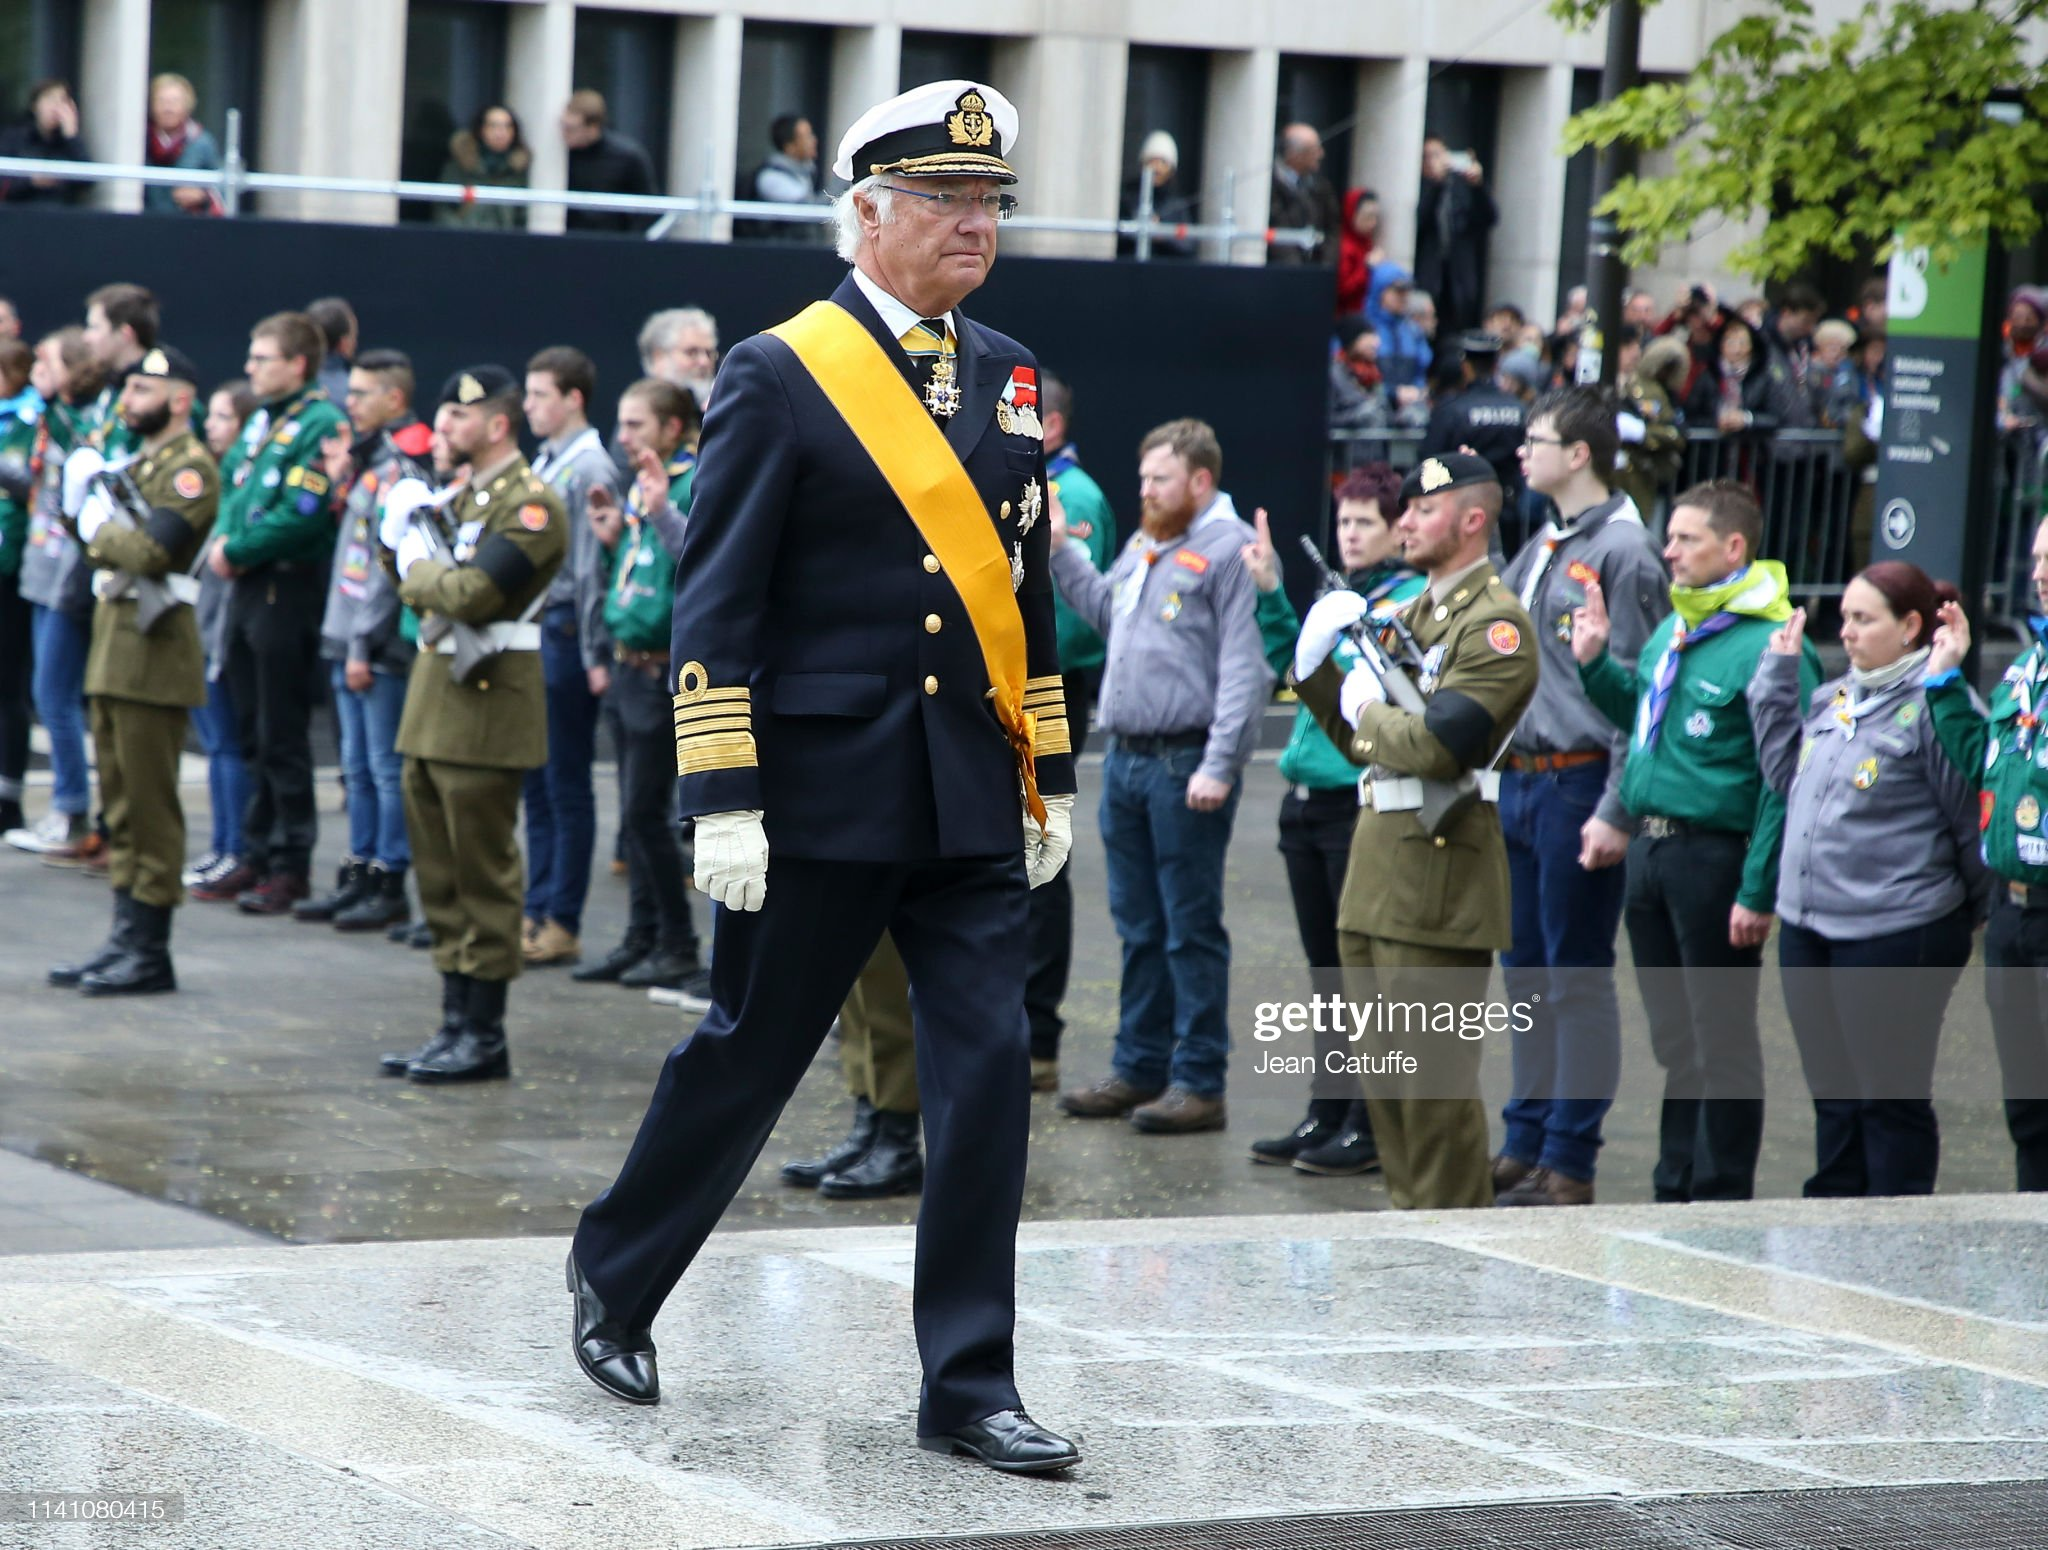 Похороны Великого Герцога Жана https://media.gettyimages.com/photos/king-carl-xvi-gustaf-of-sweden-arrives-for-the-funeral-of-grand-duke-picture-id1141080415?s=2048x2048